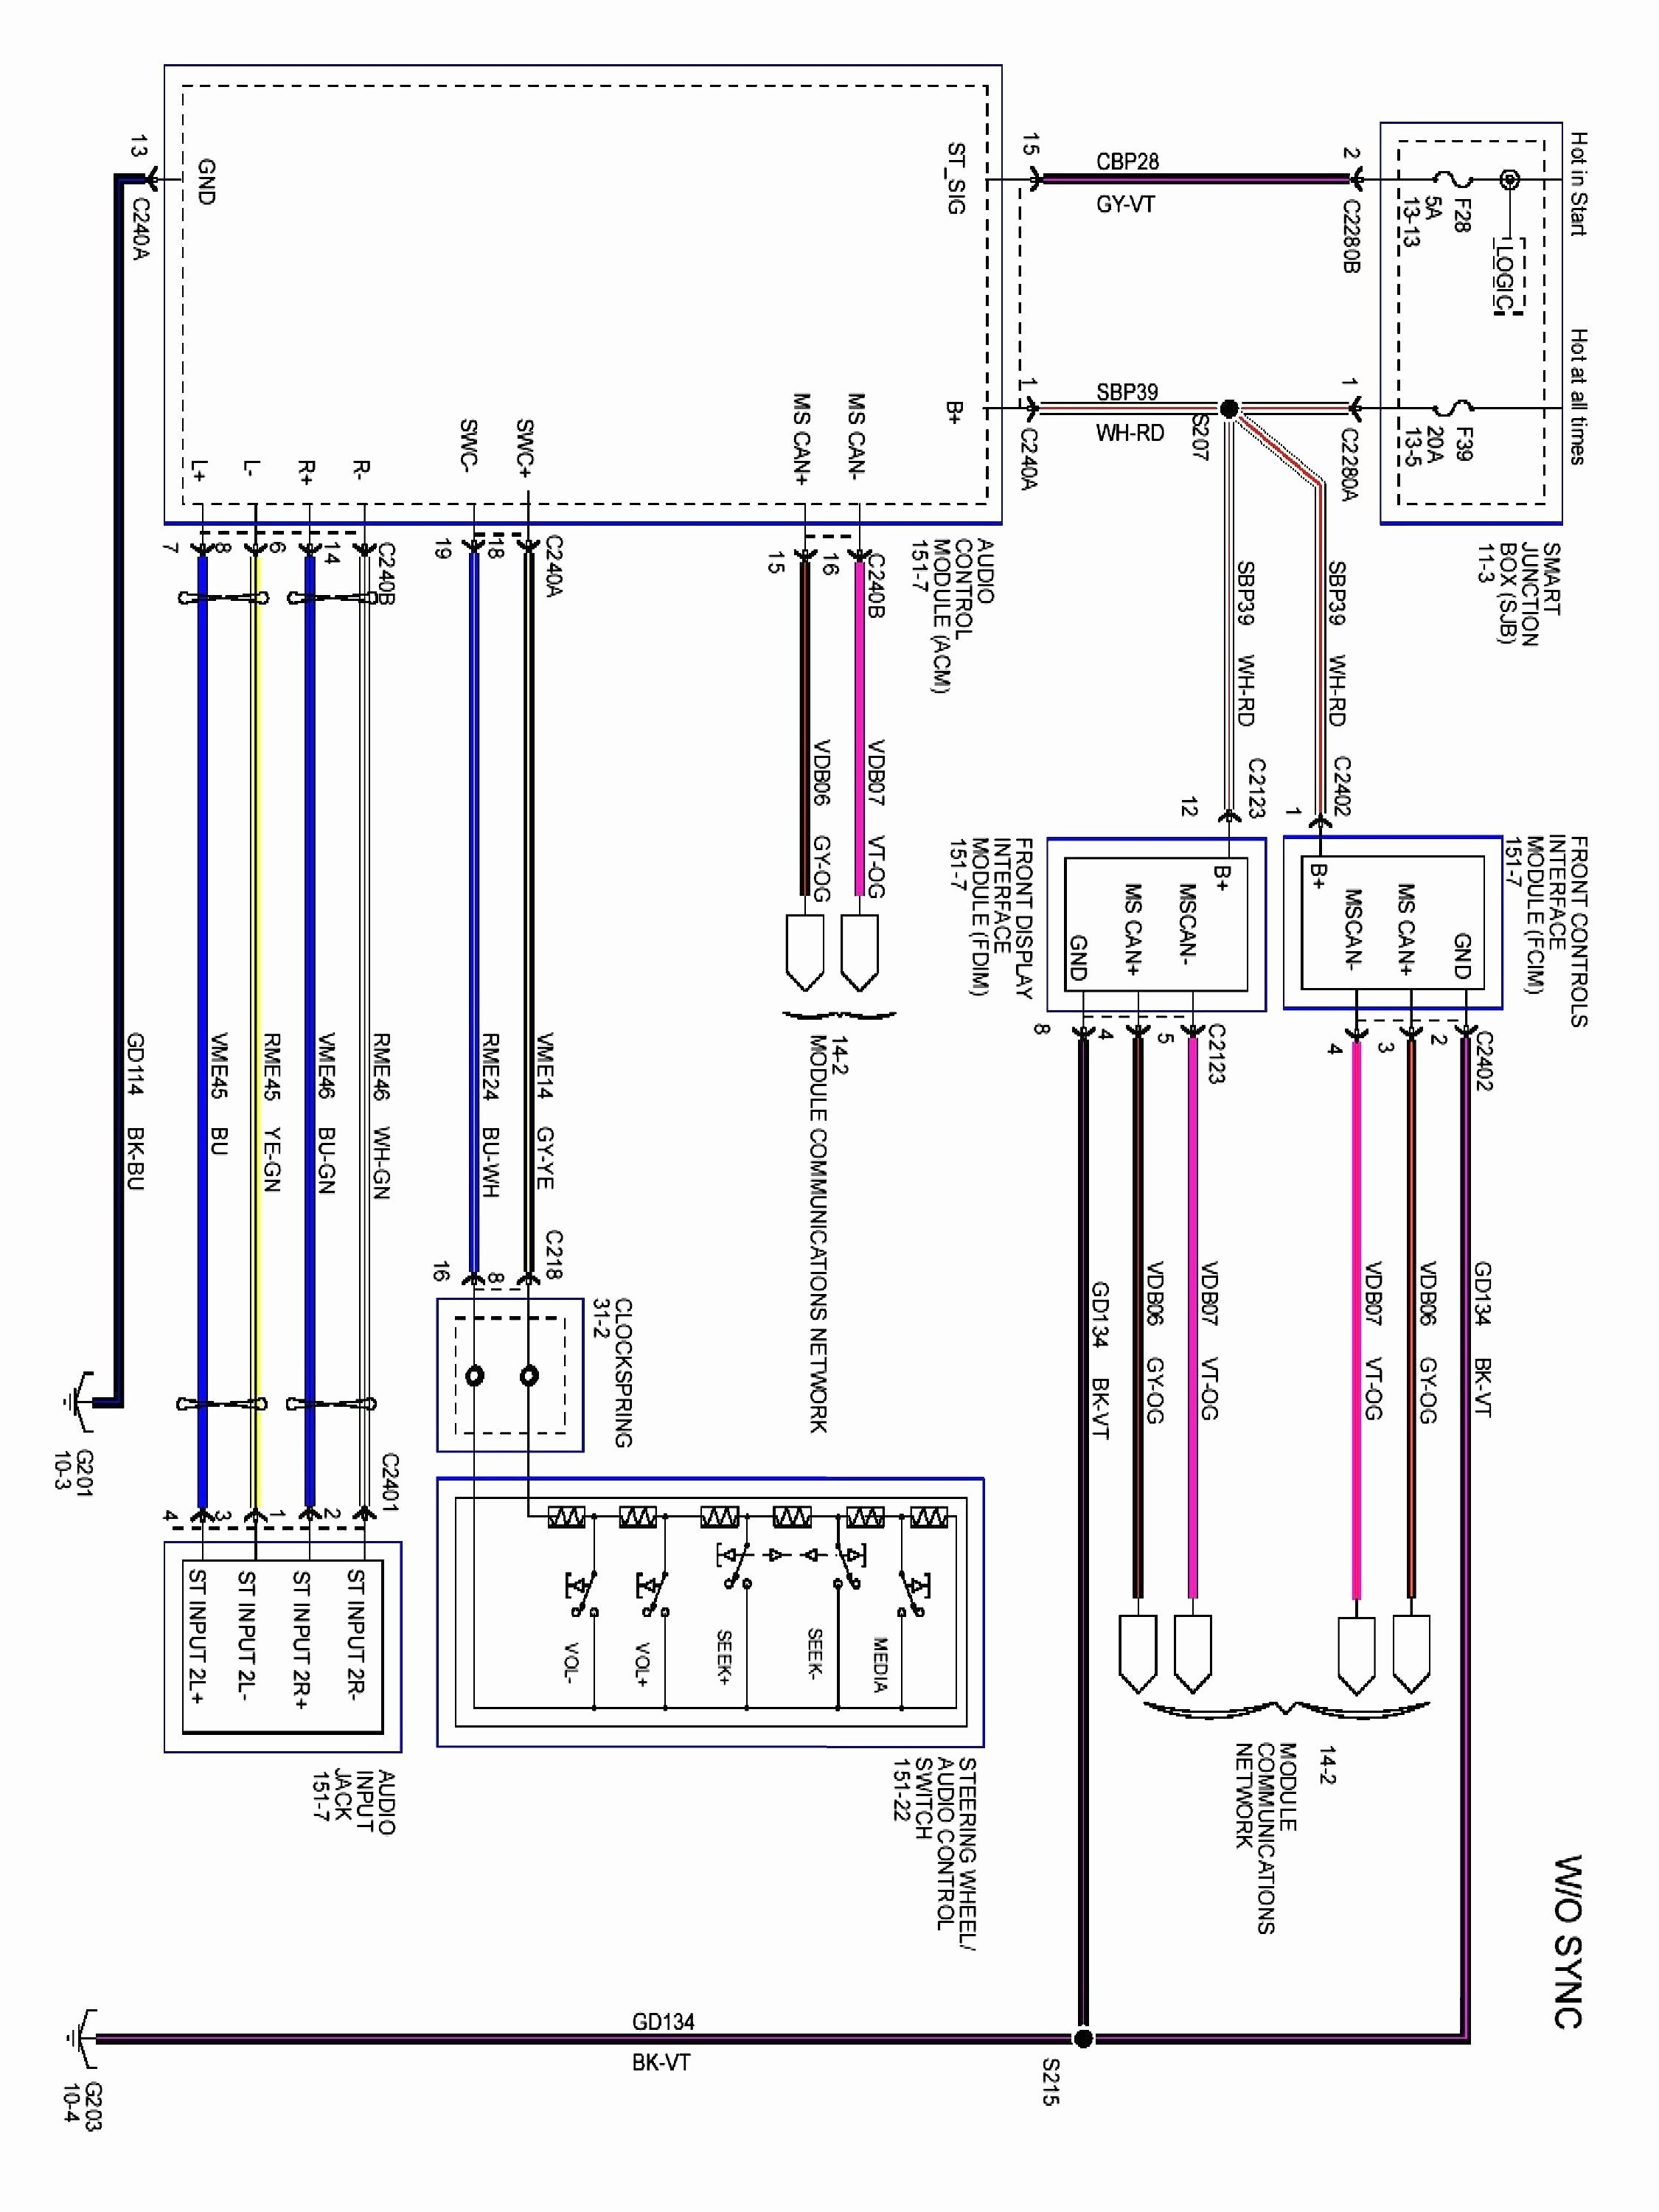 Diagram Wiringdiagram Diagramming Diagramm Visuals Visualisation Graphical Check More At Https Thebront Truck Stereo Electrical Wiring Diagram Diagram